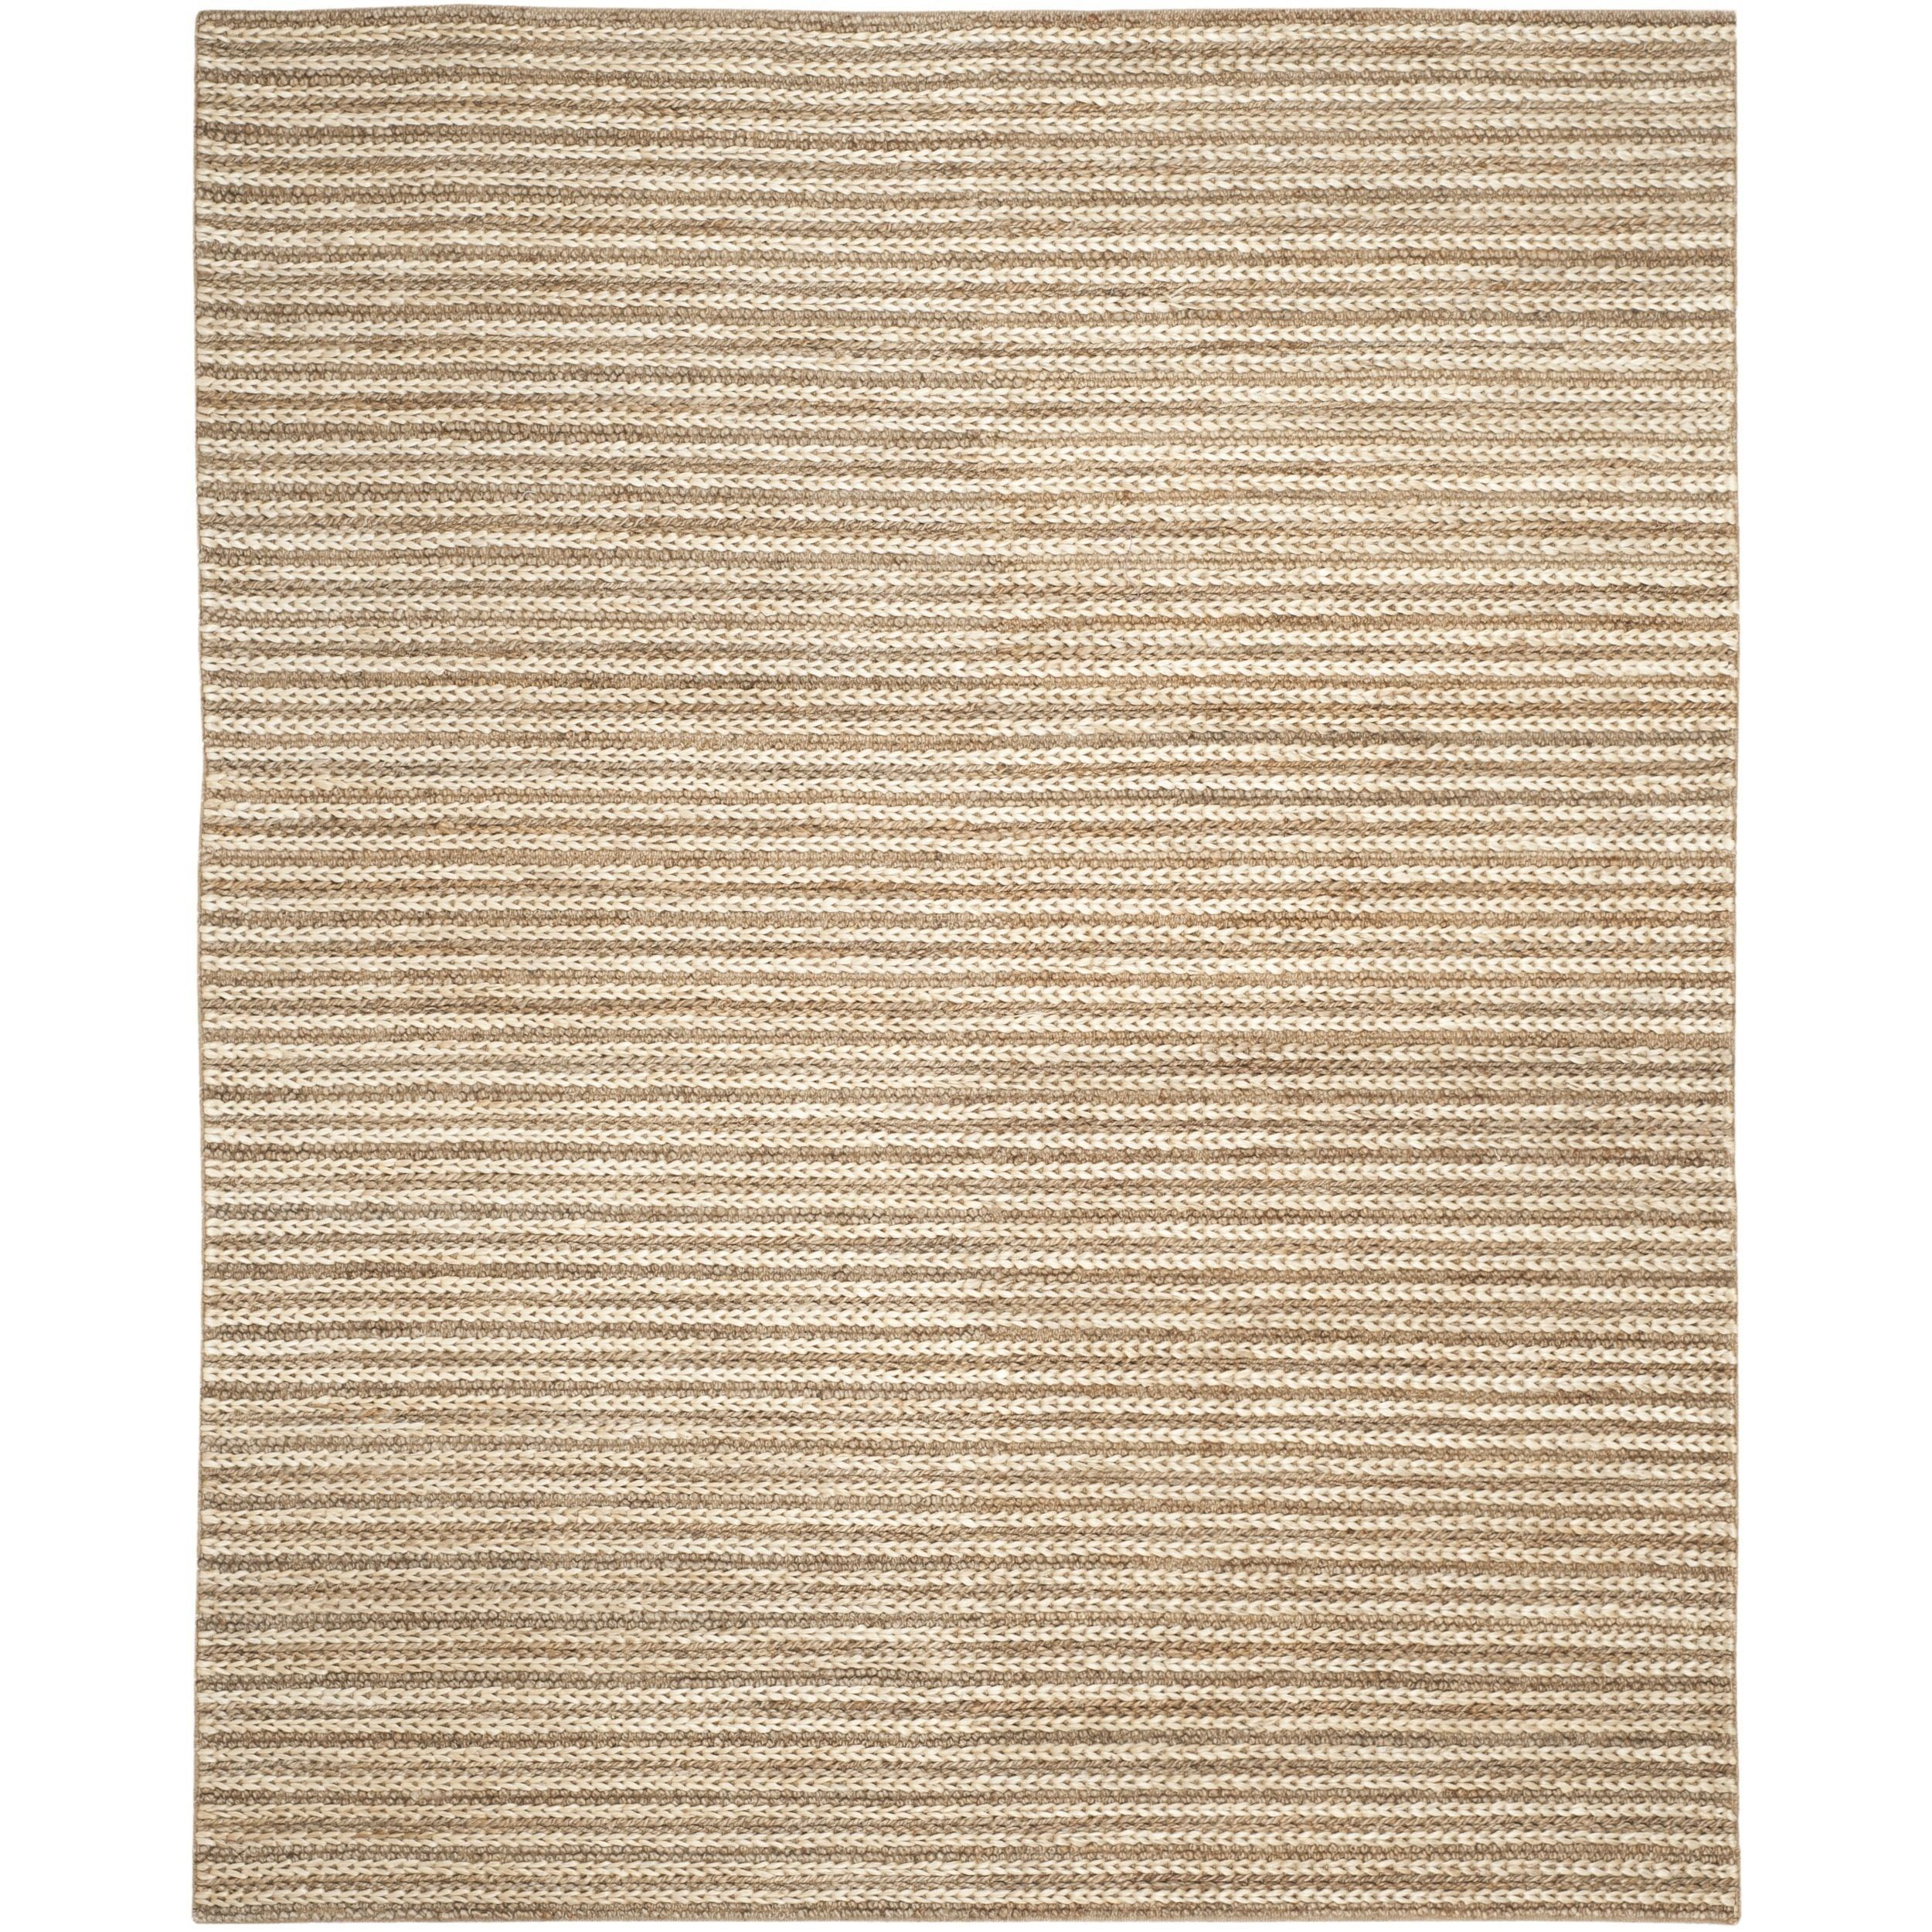 Safavieh Casual Natural Fiber Hand Woven Natural Jute Rug 8 X 10